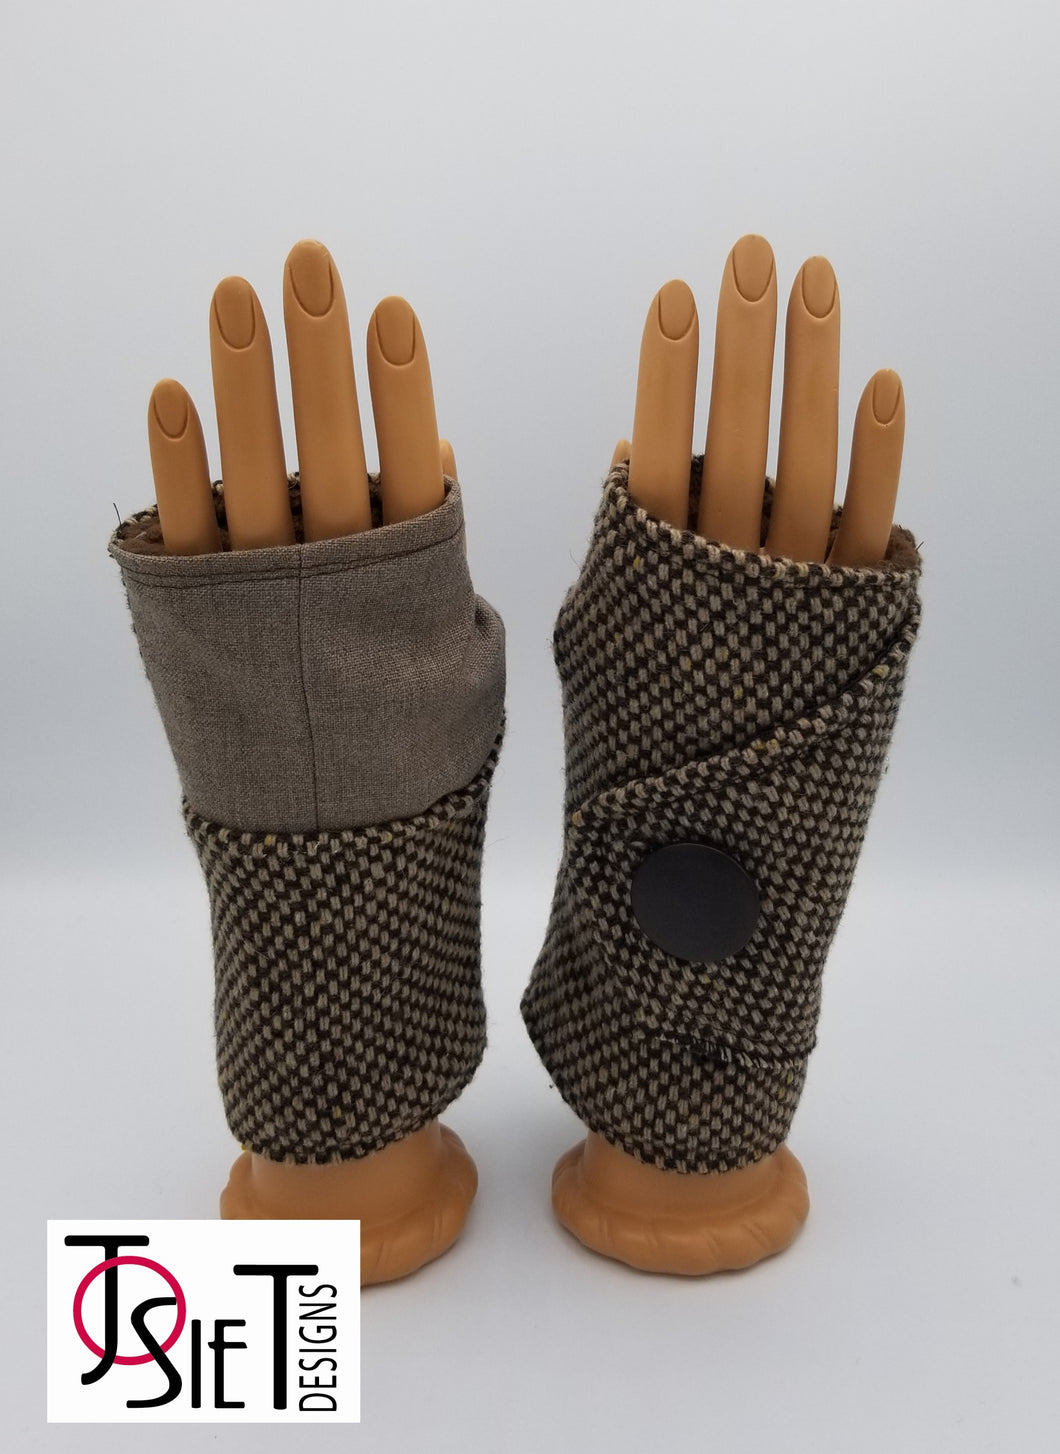 fingerless gloves, fingerless mittens, fingerless gloves for women